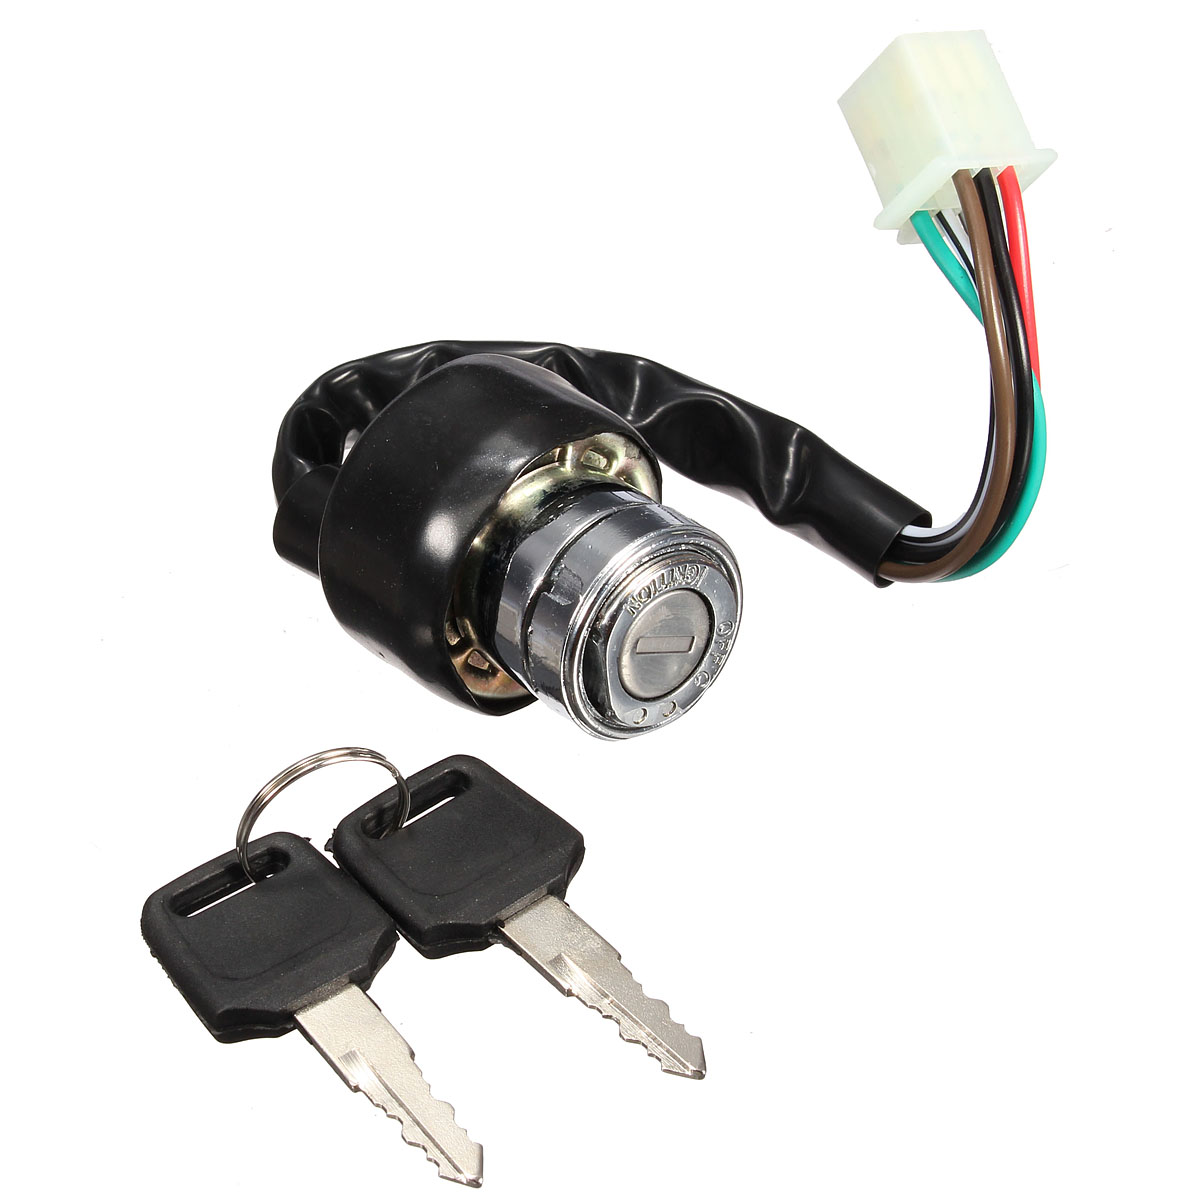 Universal Motorcycle Atv Off Road Vehicles 6 Wire Ignition Switch Yamaha Grizzly Wiring Diagram With 2 Keys In Motorbike Ingition From Automobiles Motorcycles On